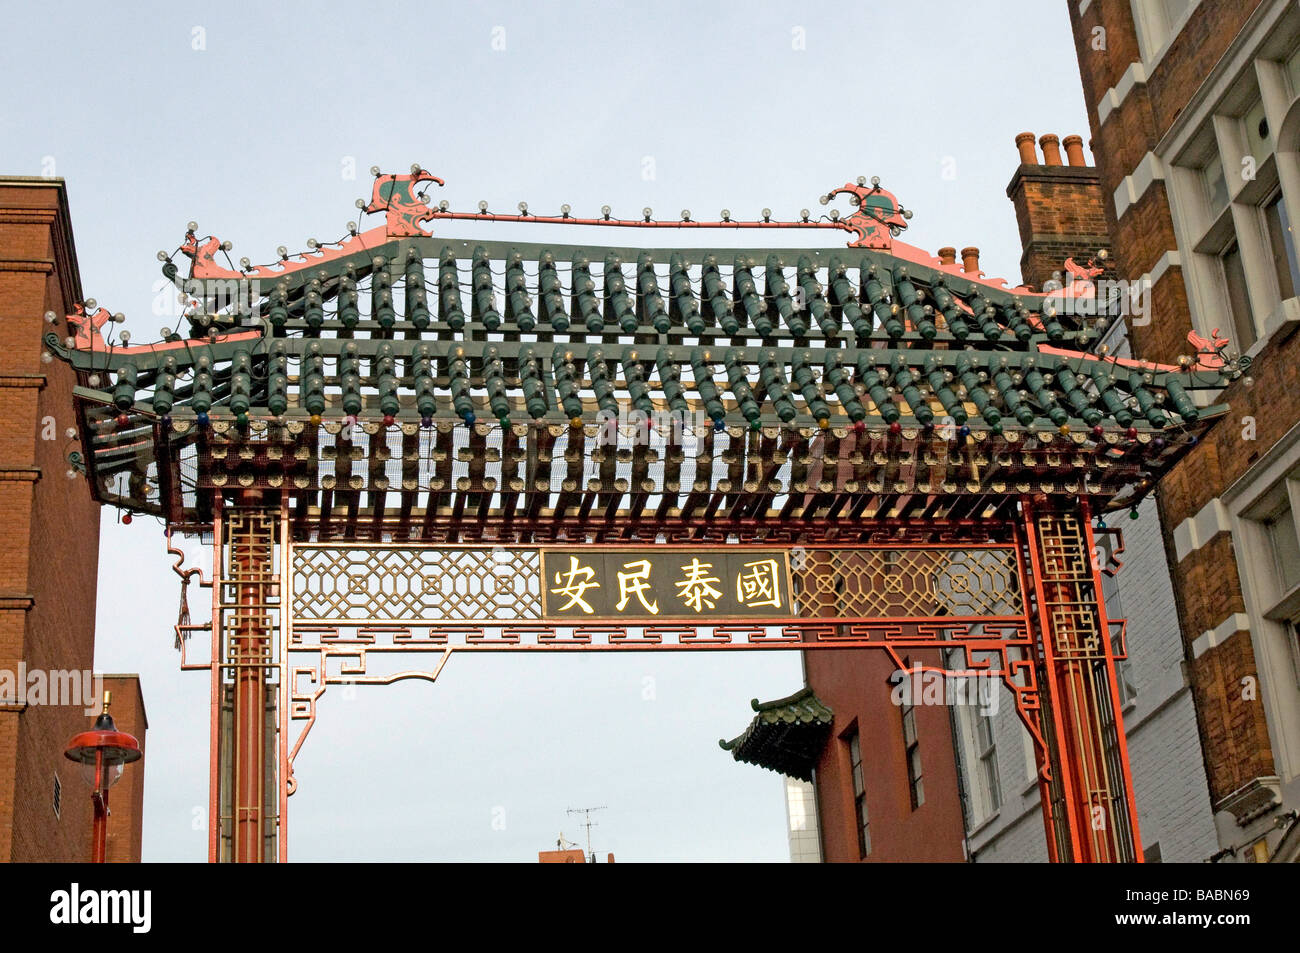 Elaborate gated entrance to London's China Town District, London, England, UK - Stock Image